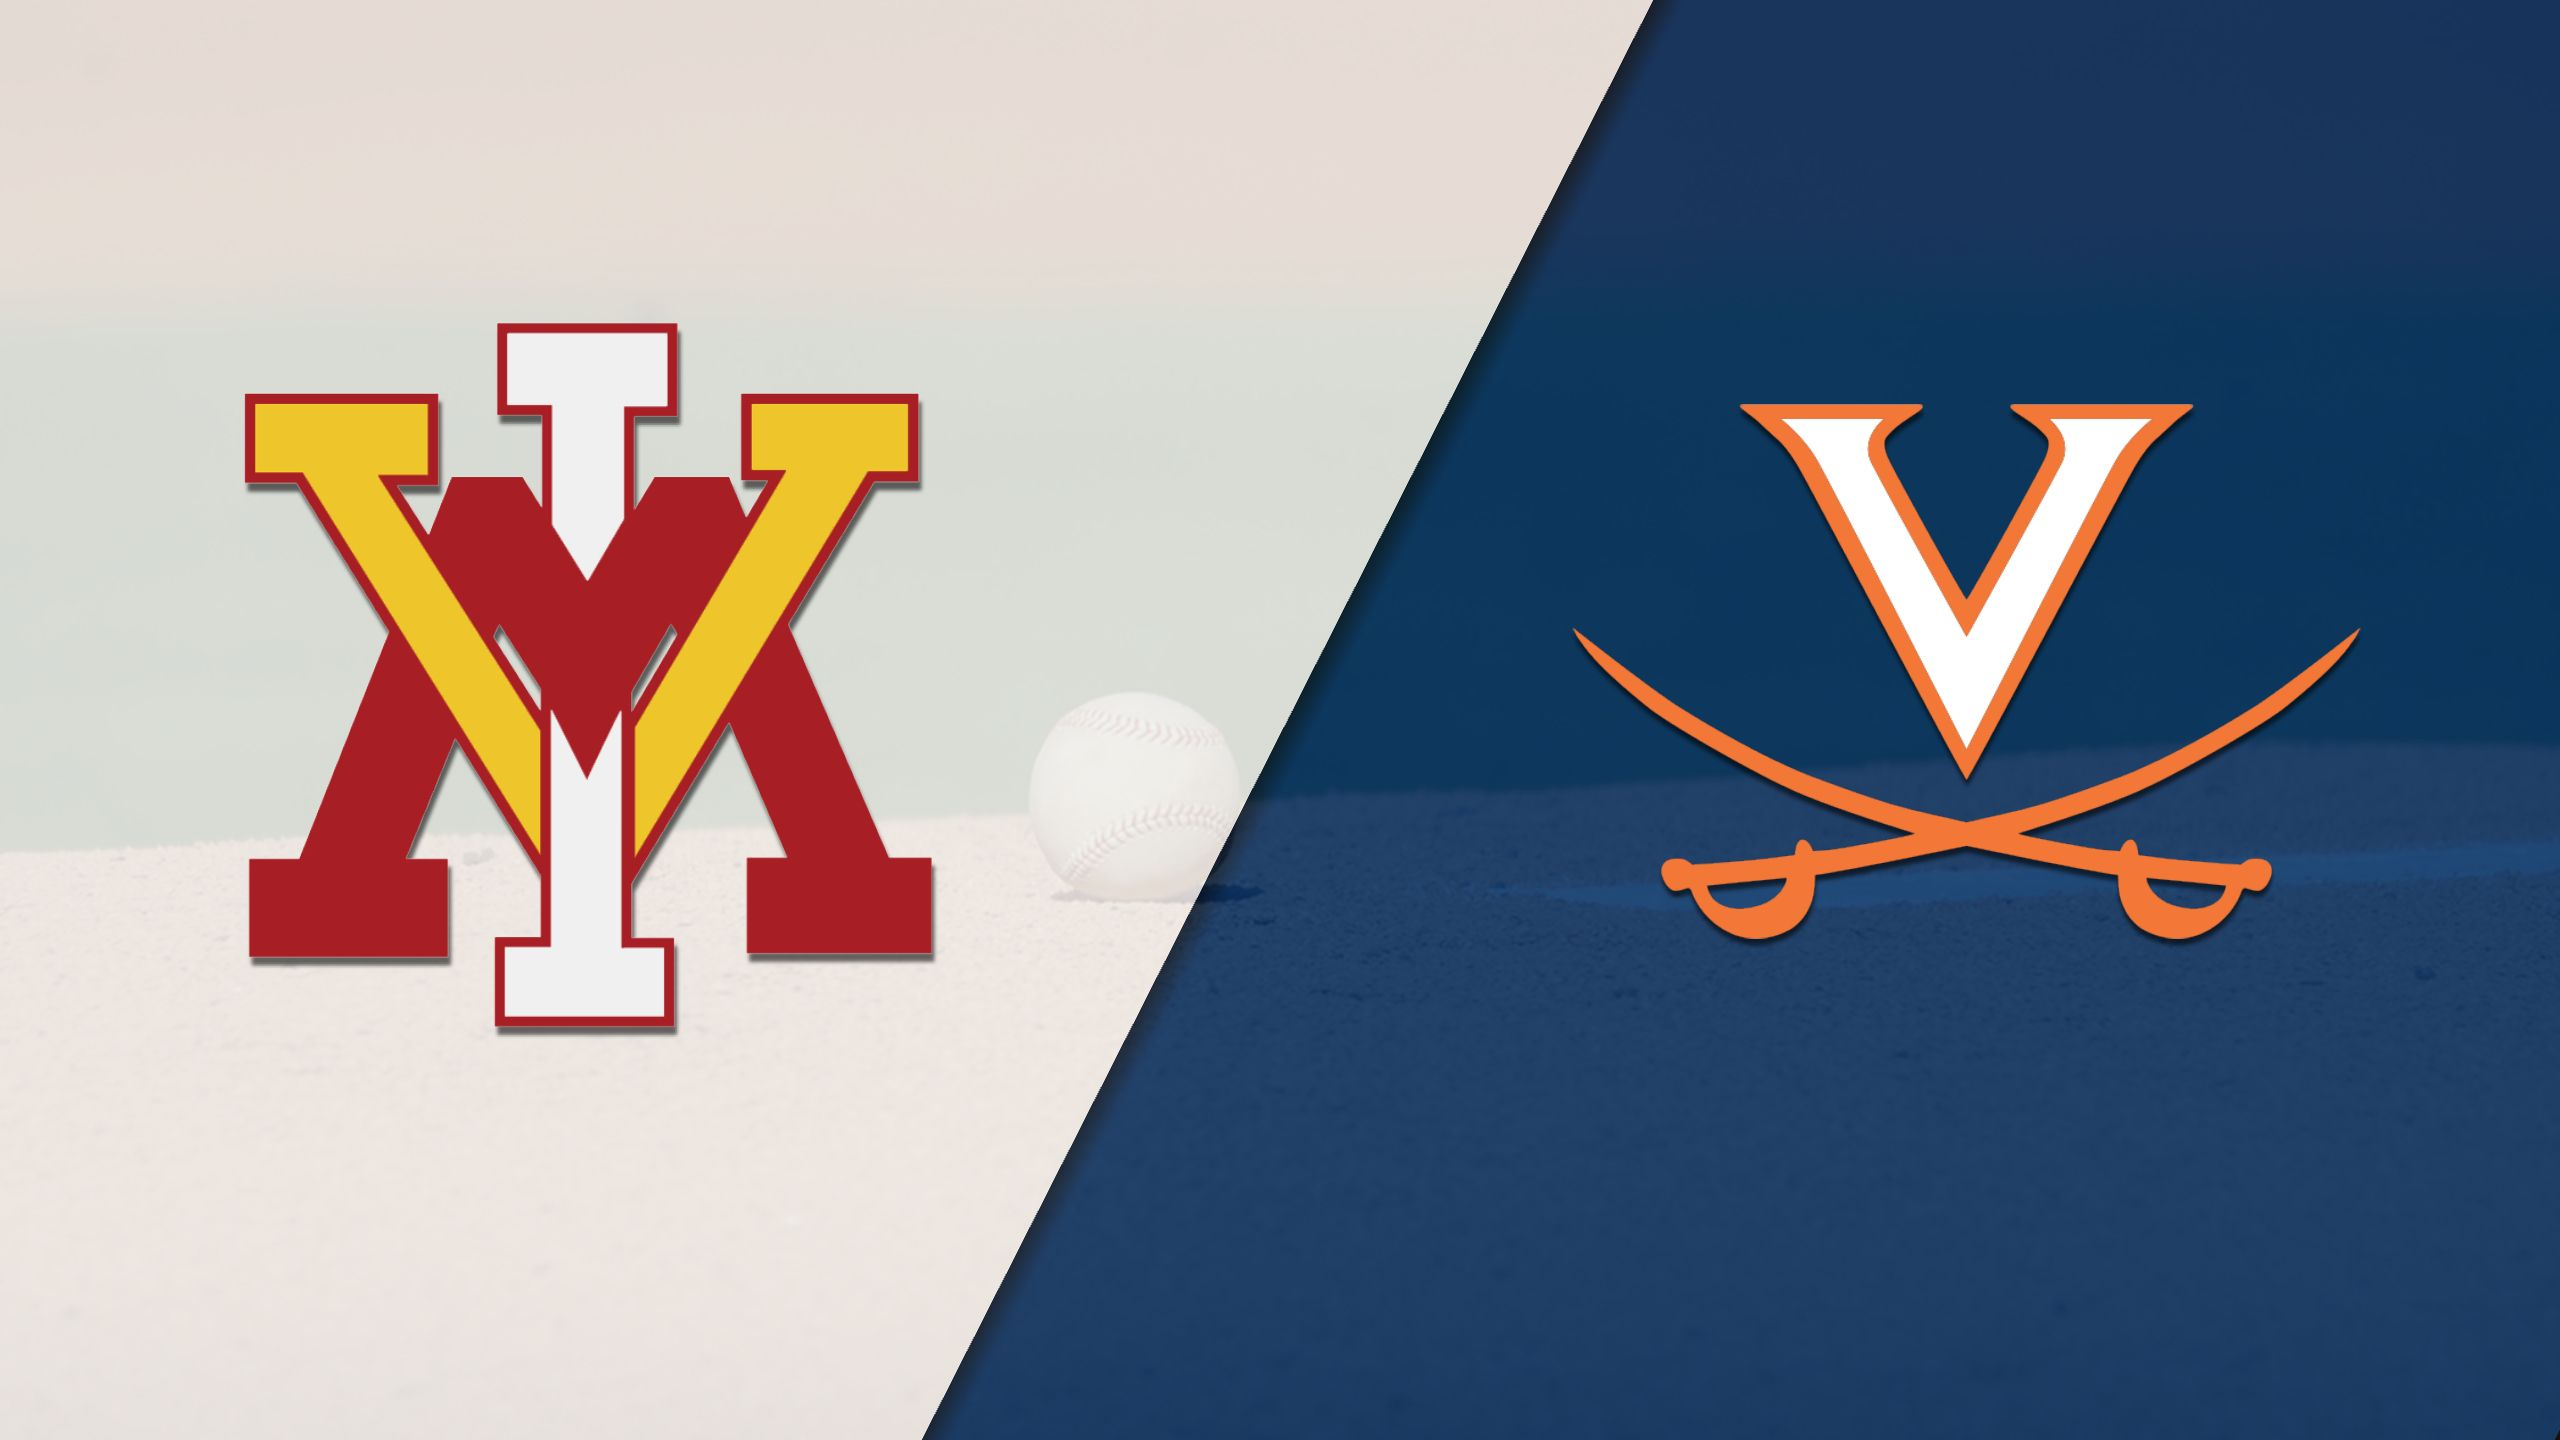 VMI vs. Virginia (Baseball)